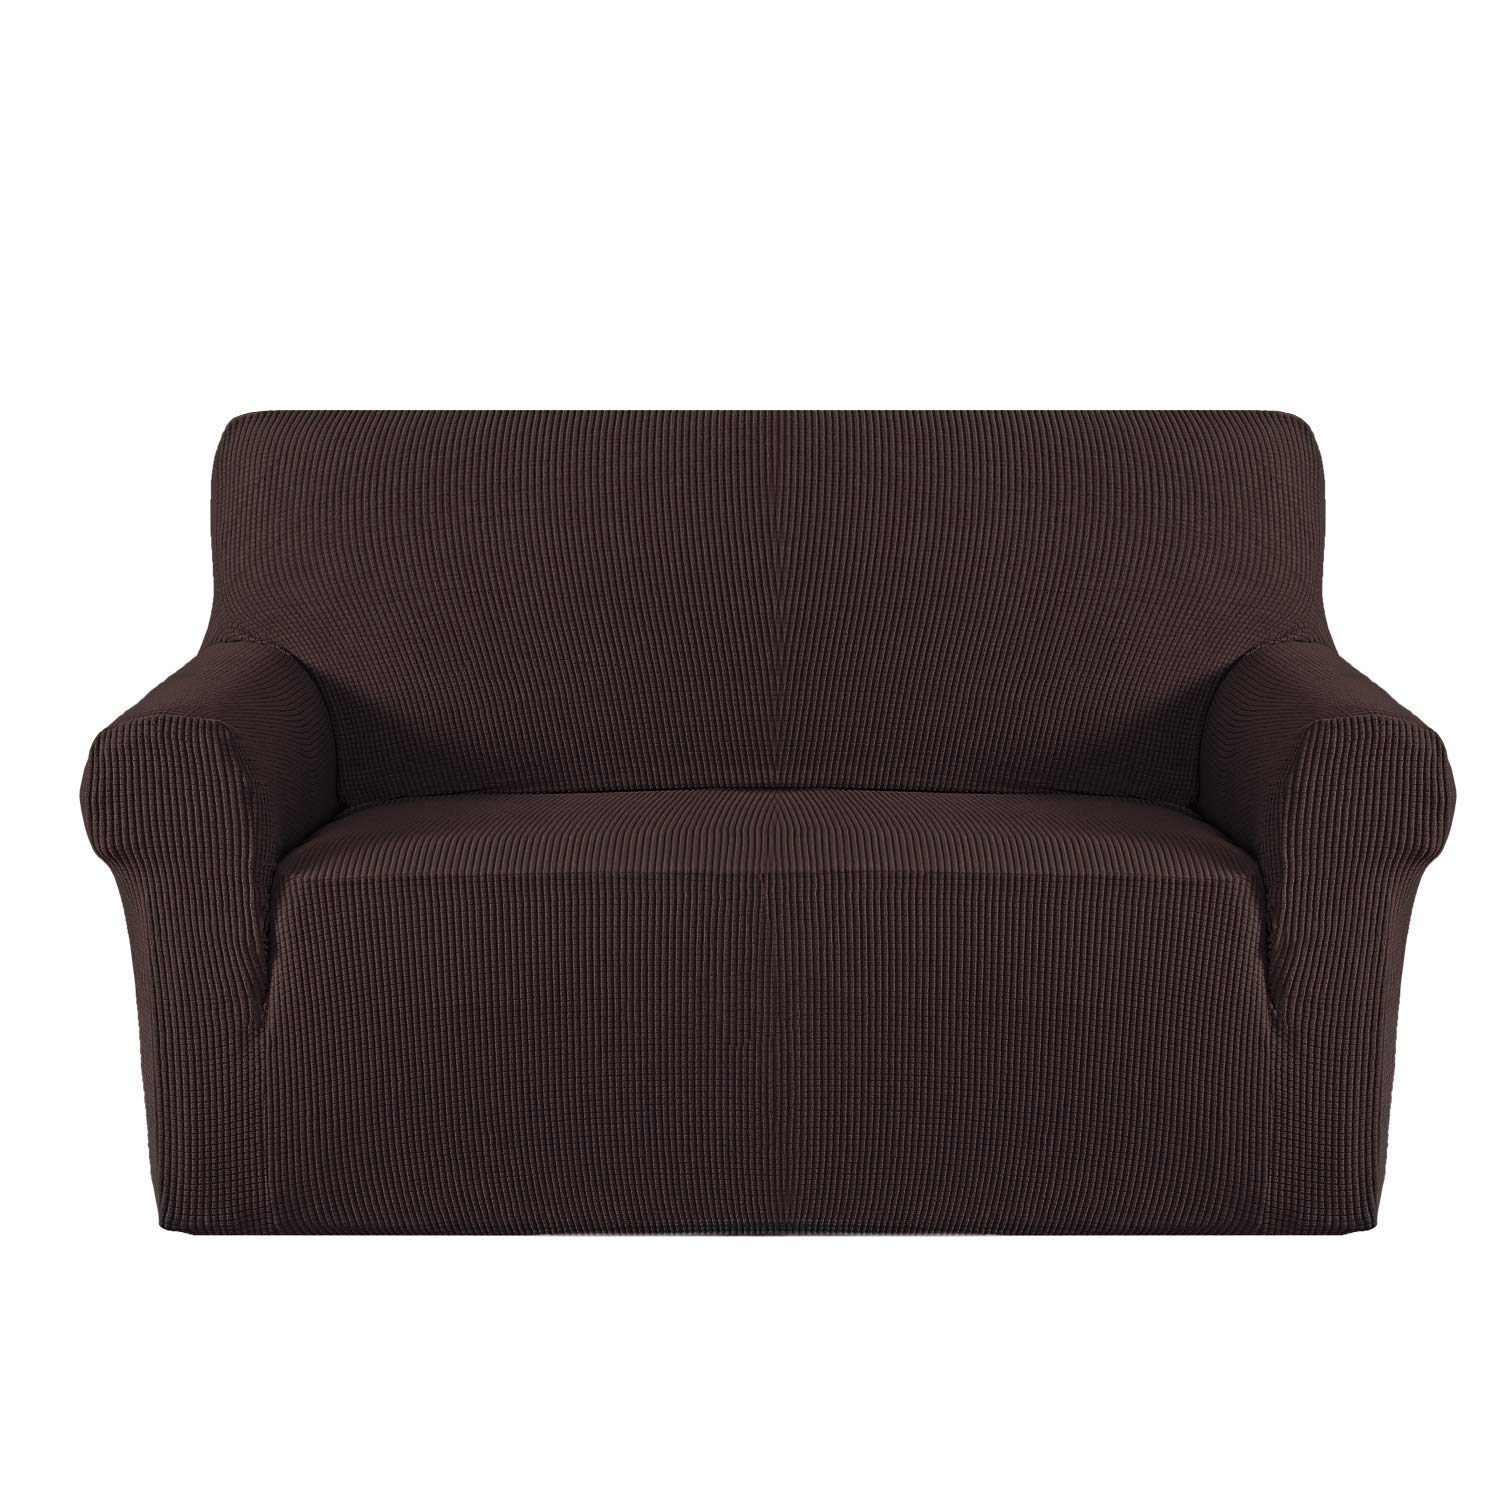 Sofa-Cover-Stretch-1-2-3-Seater-Easy-Fit-Lounge-Couch-Slipcovers-Chair-Protector thumbnail 32